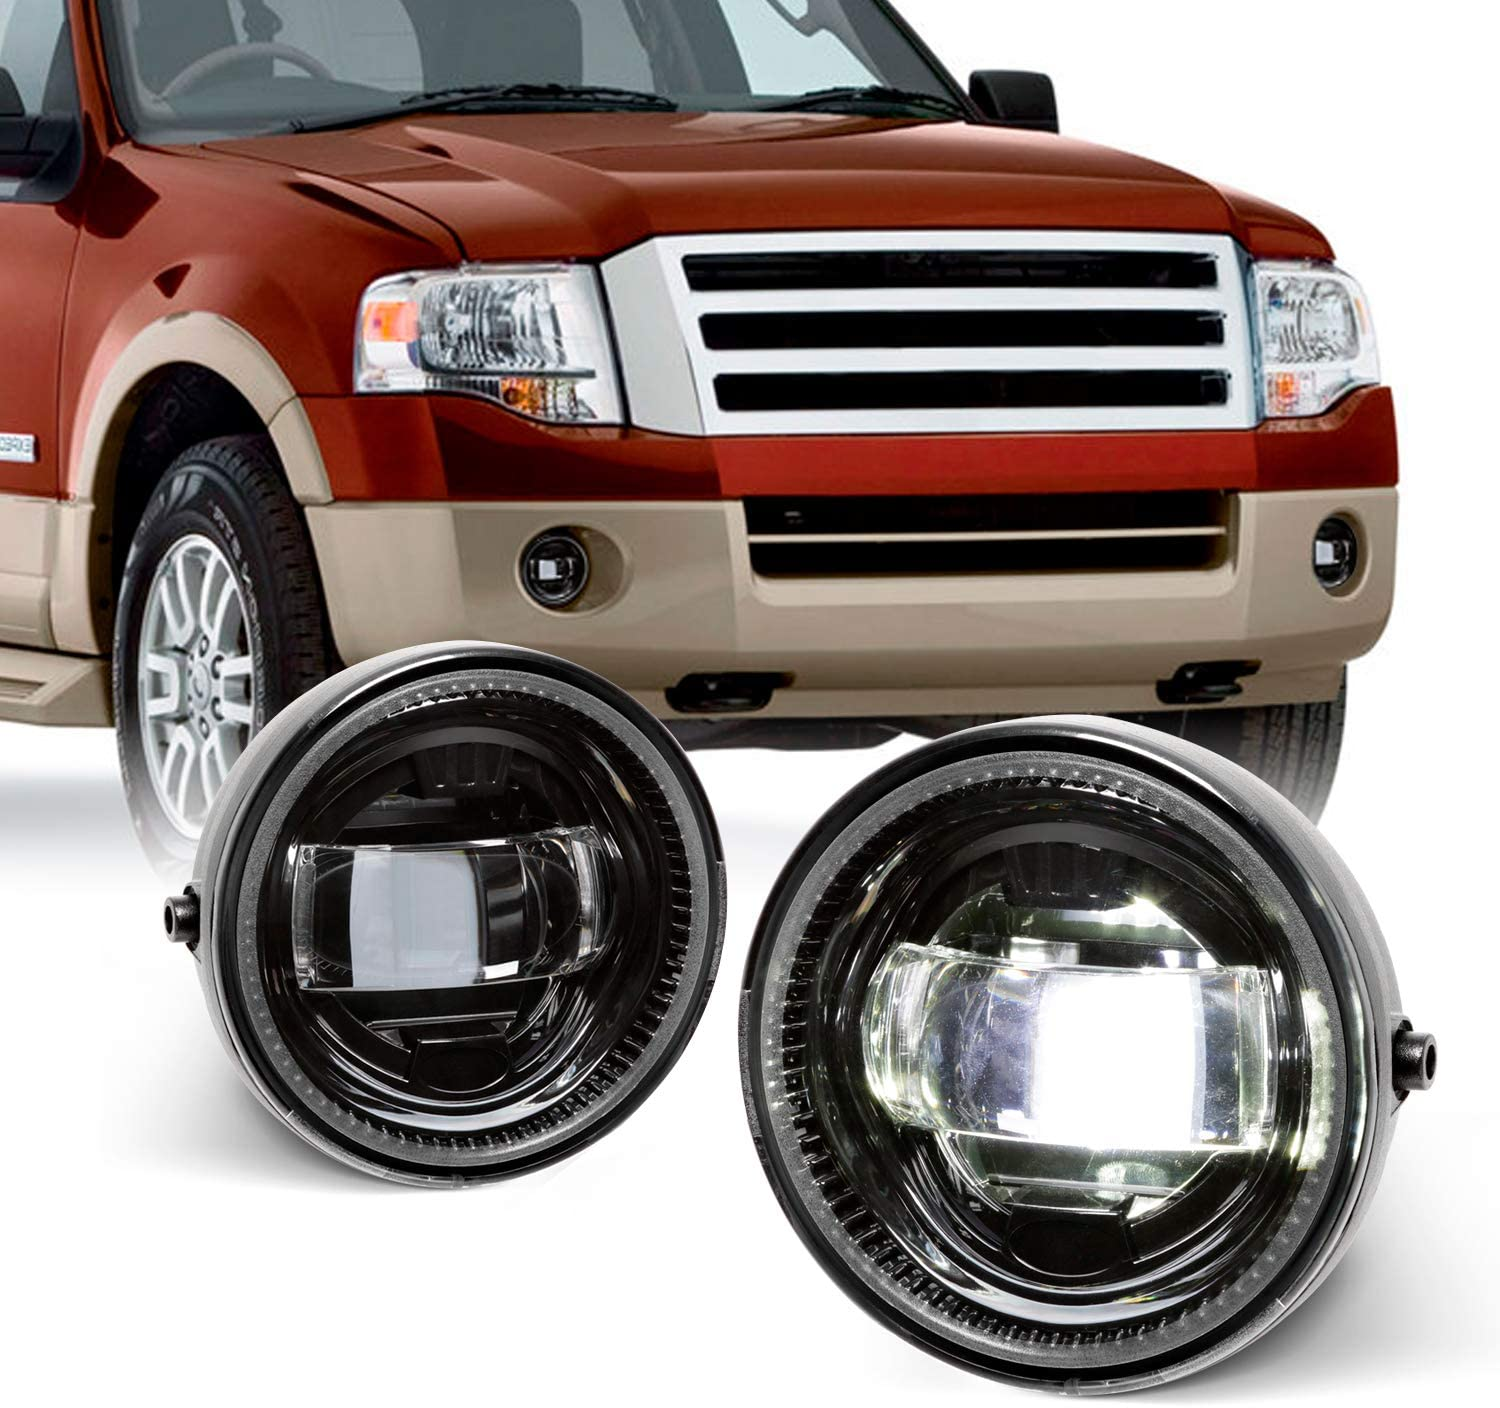 Cree LED Fits 2007-2010 Free shipping on posting reviews Ford Max 90% OFF 08-10 Expedition 11-14 Ranger